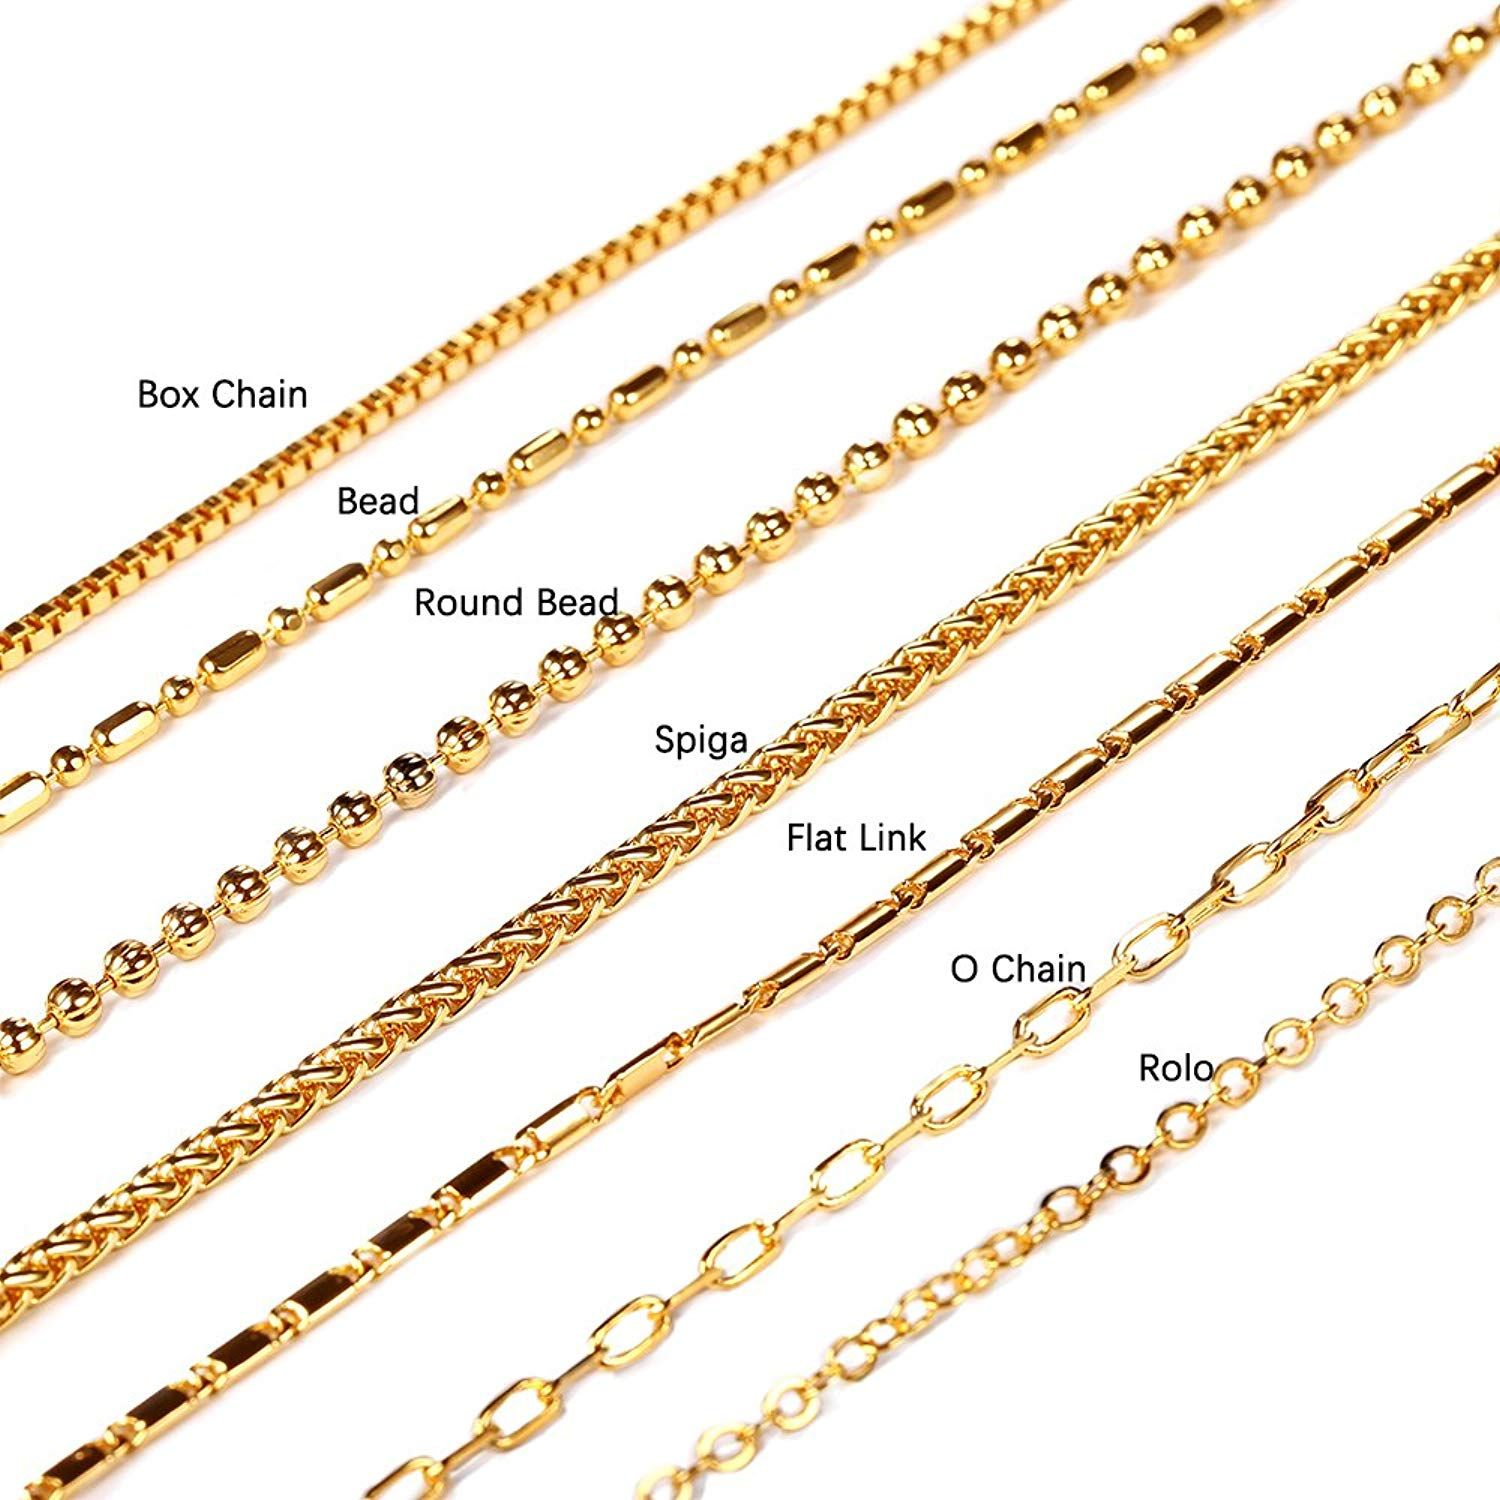 U7 Chain 7 Types Men Women Jewelry Pendant Chain 2mm 3mm Wide 18k Gold Plated Stainless Steel Necklace Necklace Chain Types Gold Necklace Chain Jewellery Chain